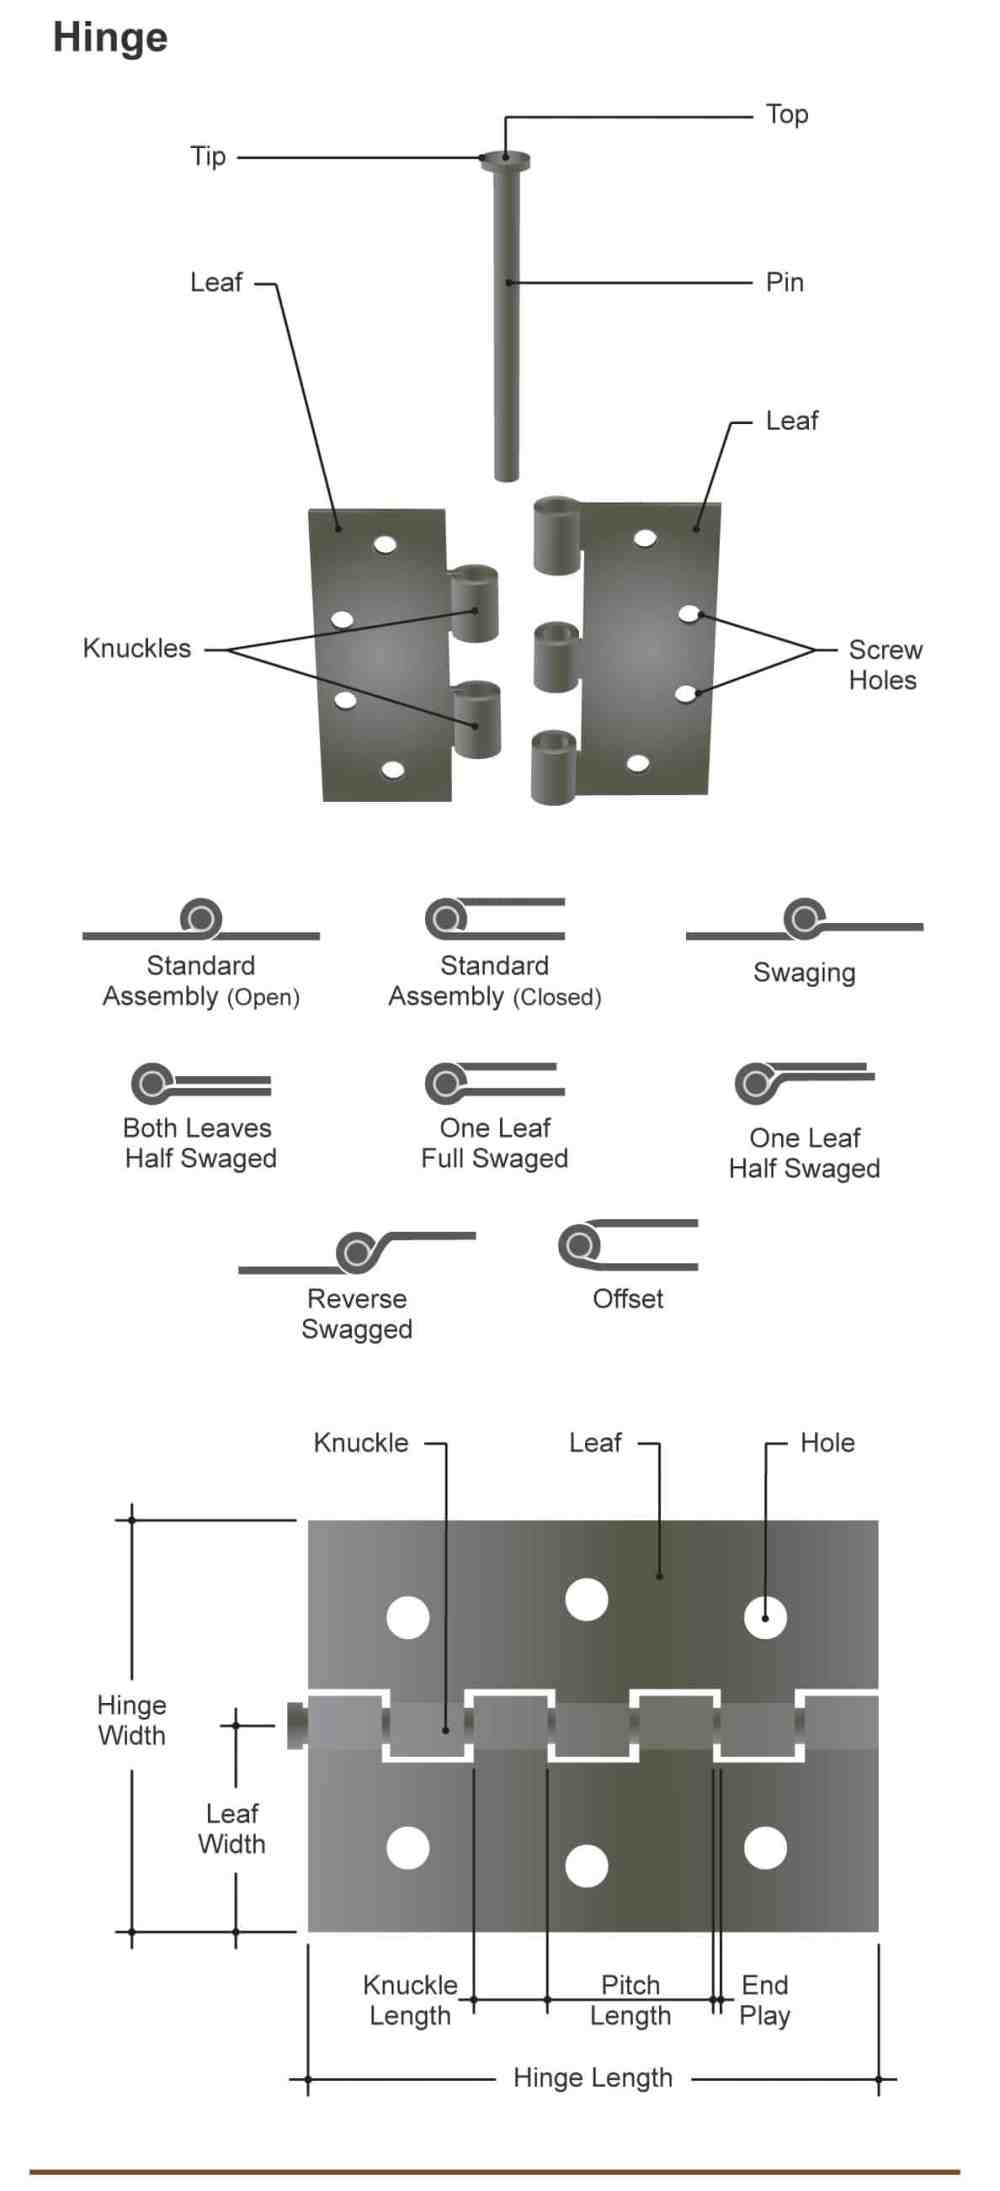 medium resolution of diagram illustrating the many different parts of a door hinge and types of hinges